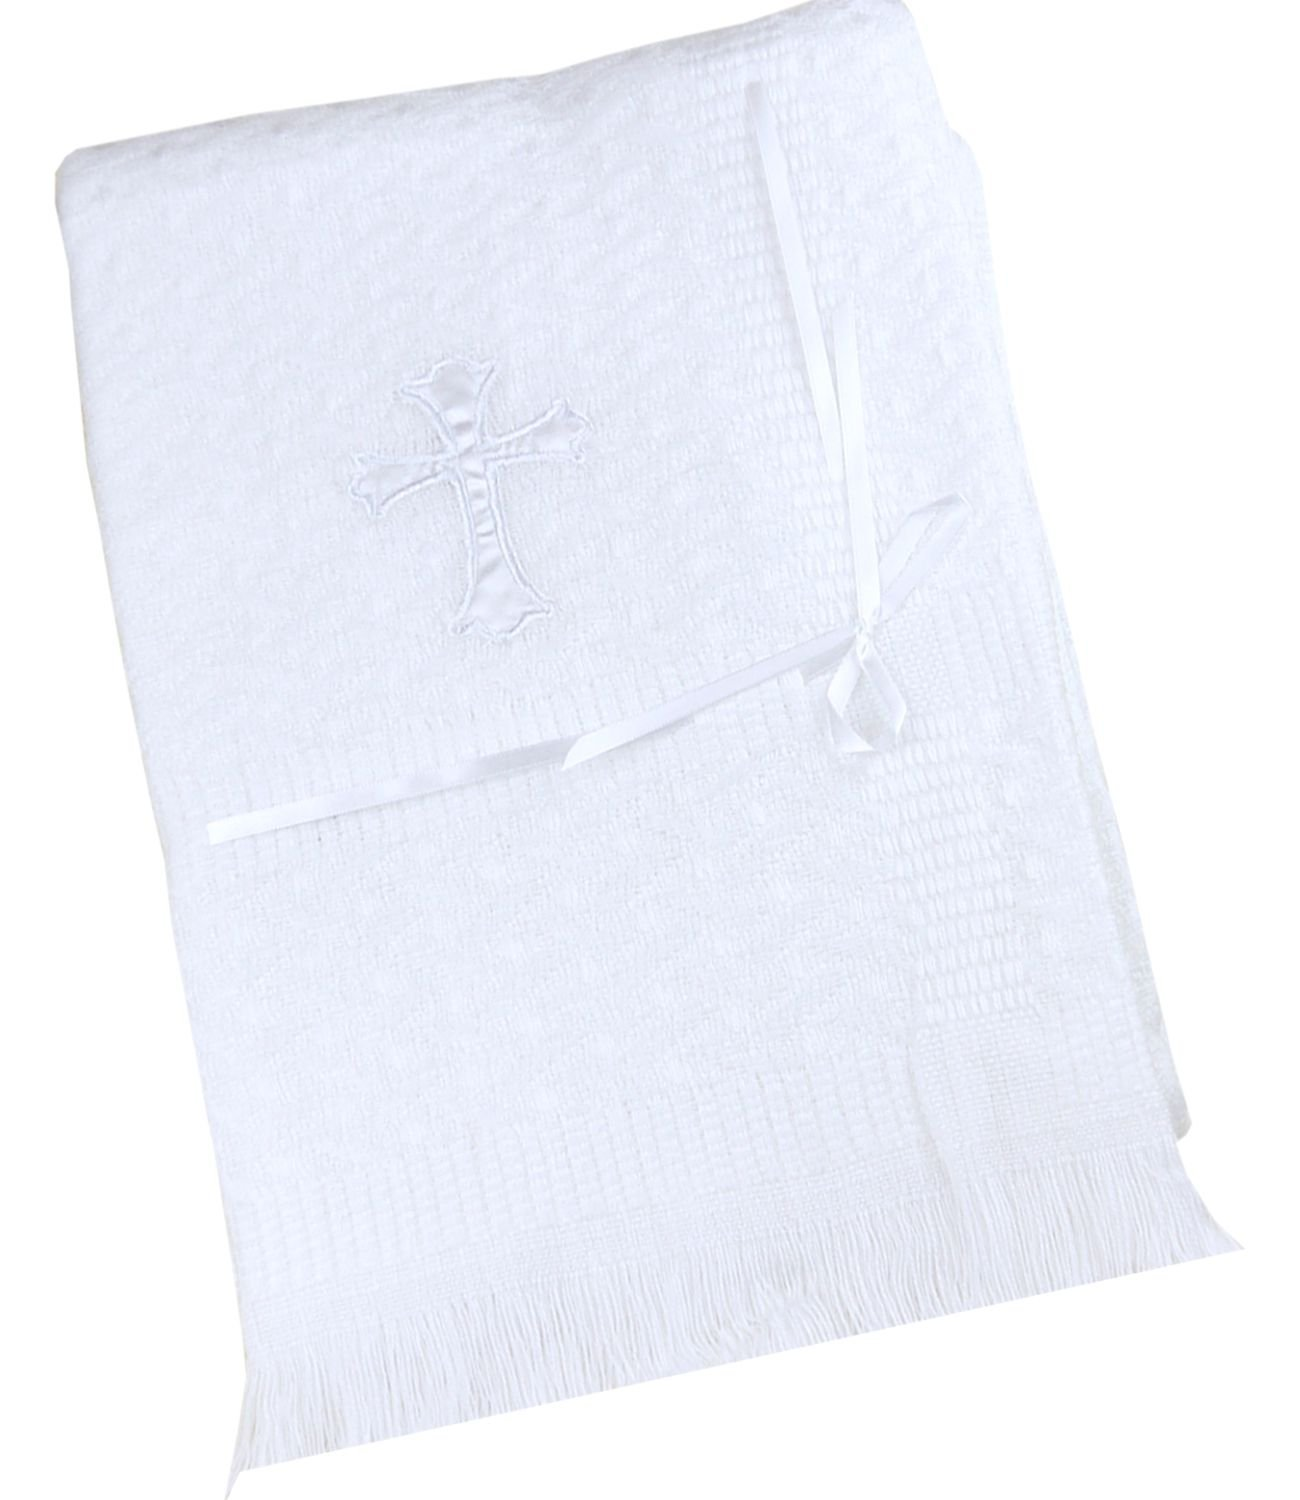 BabyPrem Baby Christening Shawl White With Embroidered Cross Acrylic 120 x 120cm SLD416